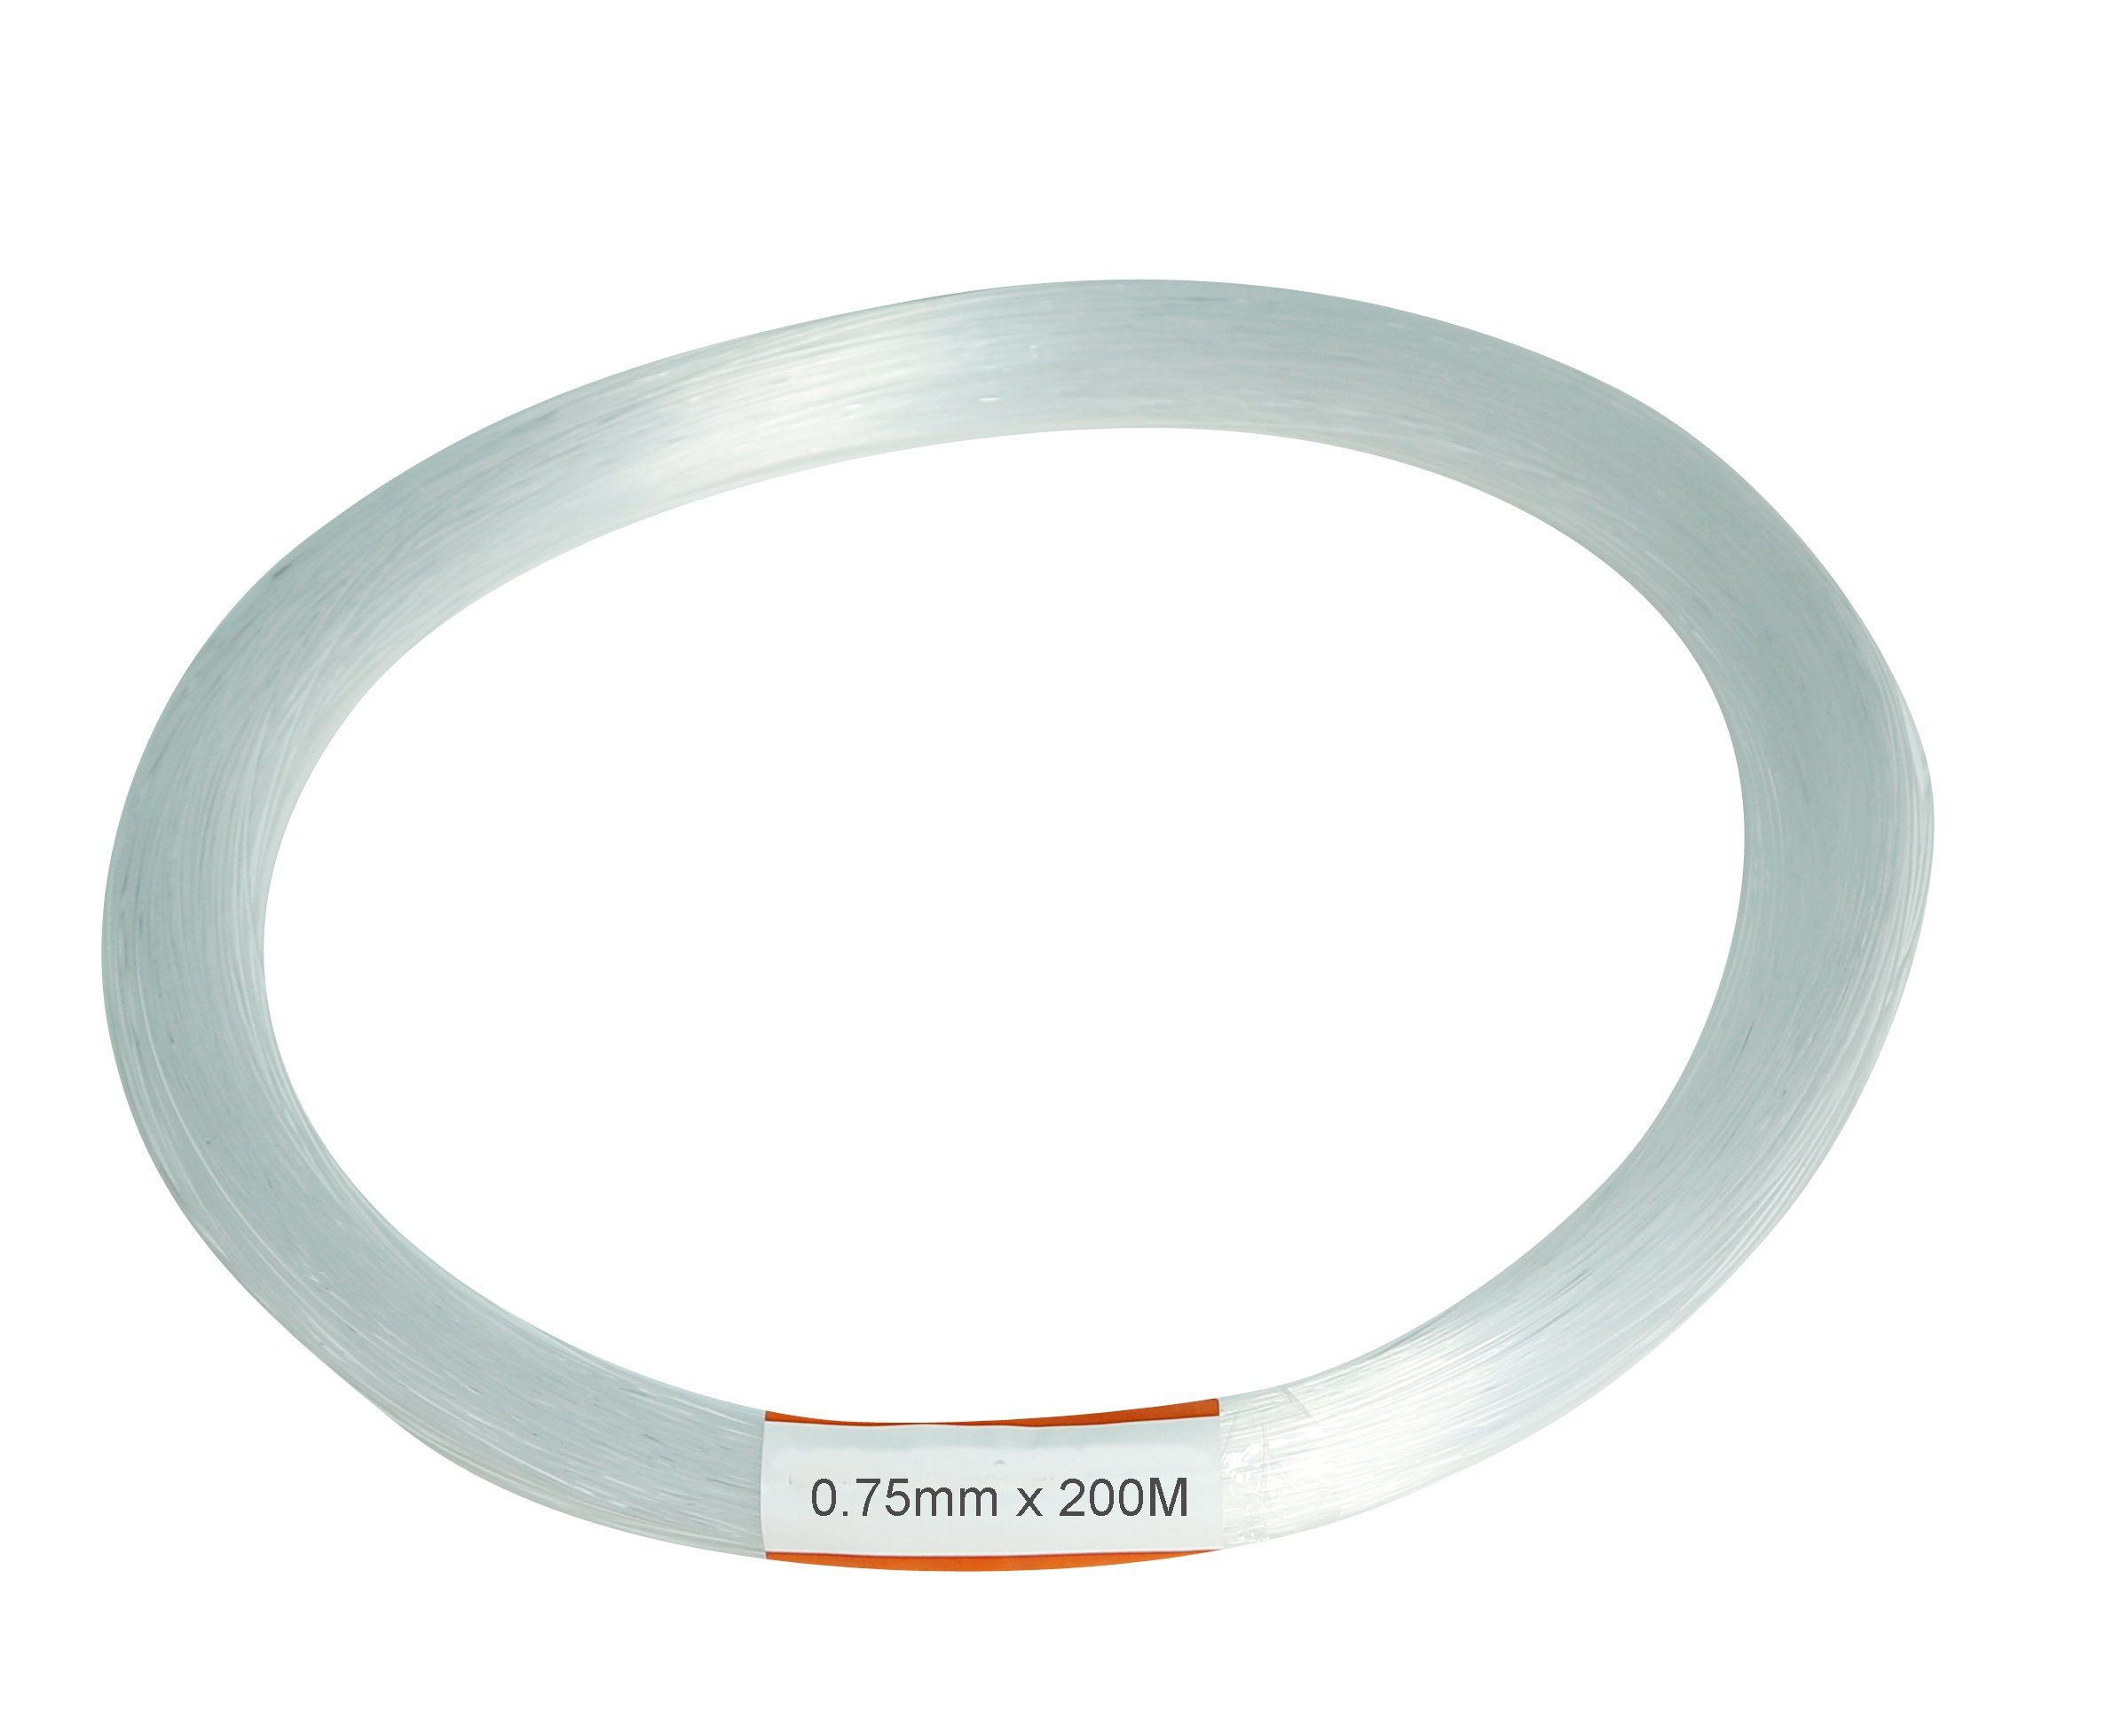 Fiber optic cable,PMMA plastic end glow cables for star sky ceiling led light kit 0.03in(0.75mm) 656ft(200M)/roll